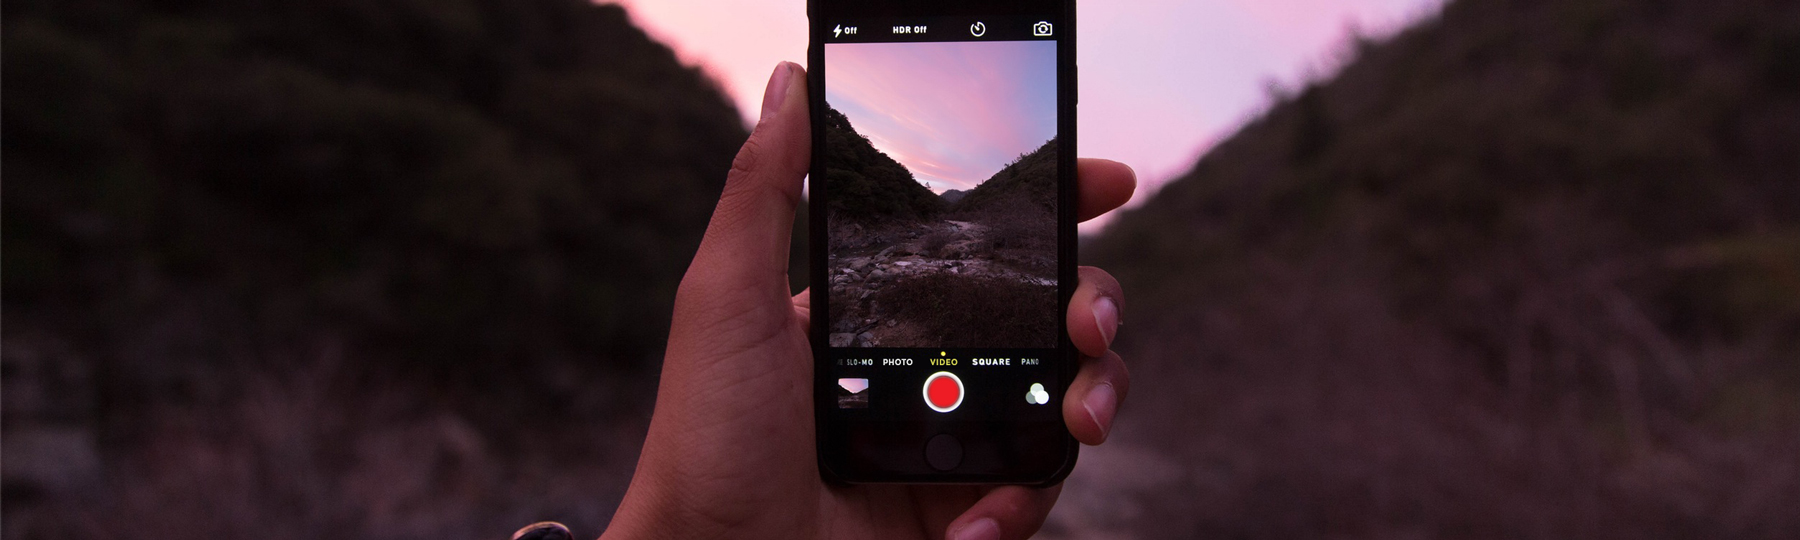 person holding up a mobile phone and taking a photo of mountains and a sunset